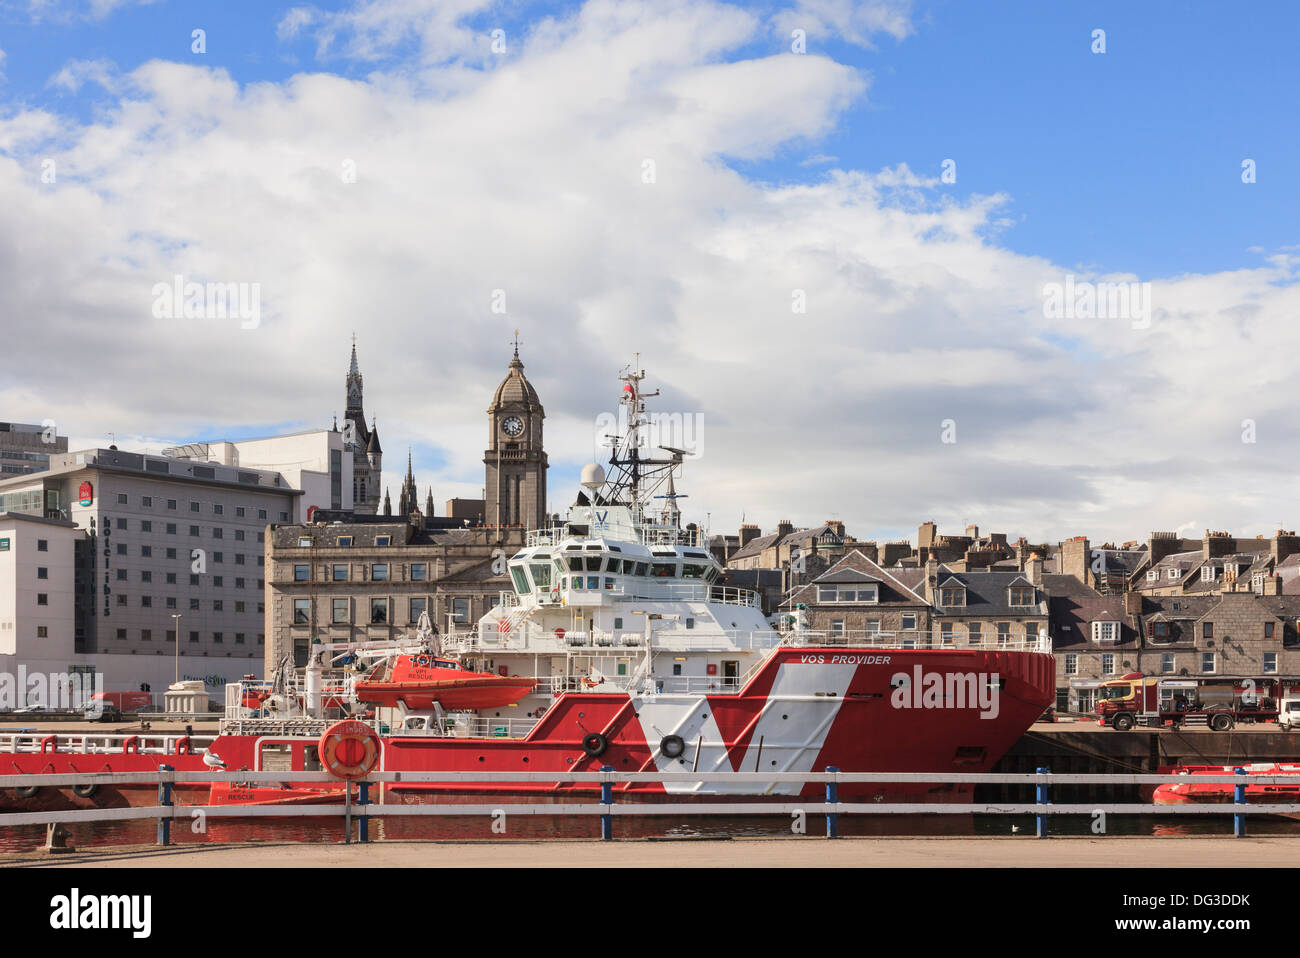 VOS Provider a VROON shipping group North Sea offshore oil supply ship in dock with city centre beyond port of Aberdeen Scotland - Stock Image